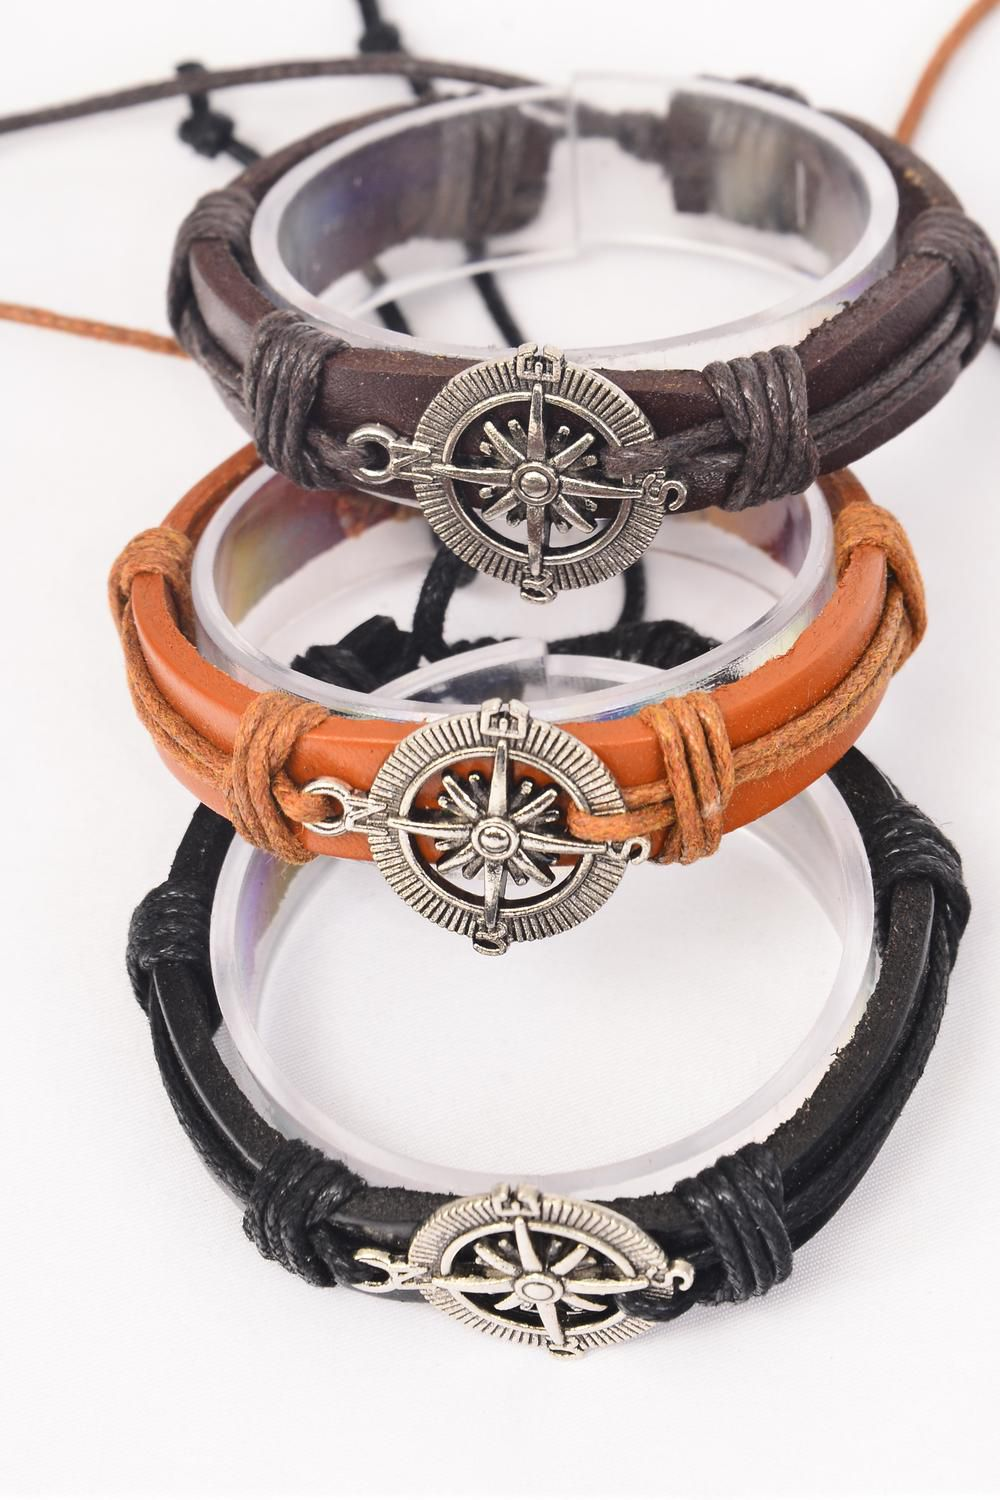 Bracelet Real Leather Band Compass Adjustable/DZ **Unisex** Adjustable,4 of each Color Mix,Hang tag & OPP Bag & UPC Code